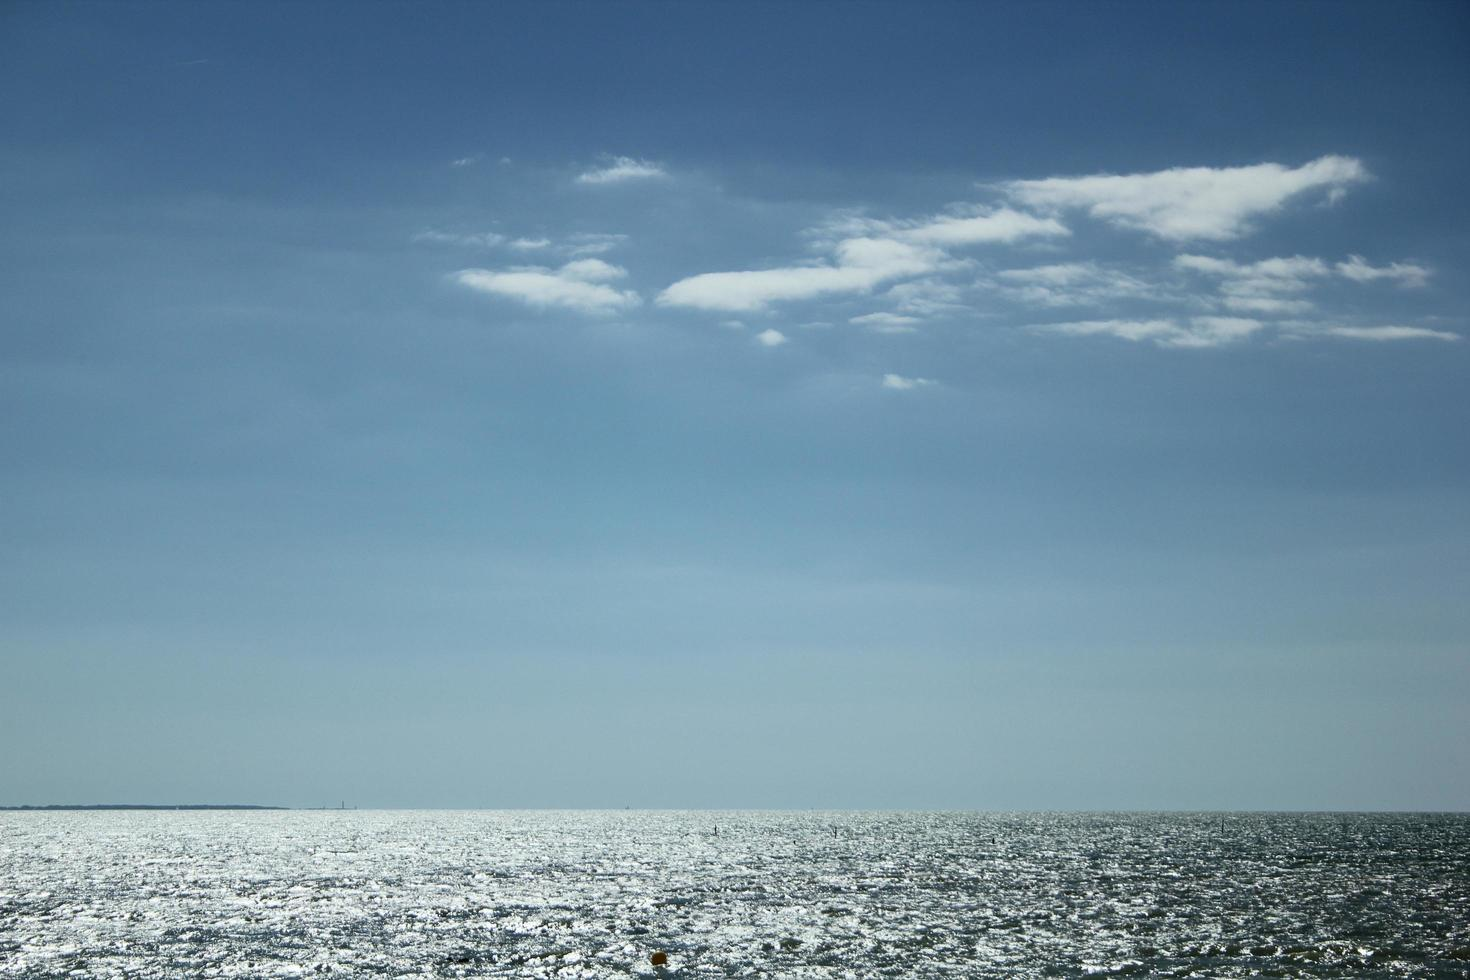 The ocean in France photo